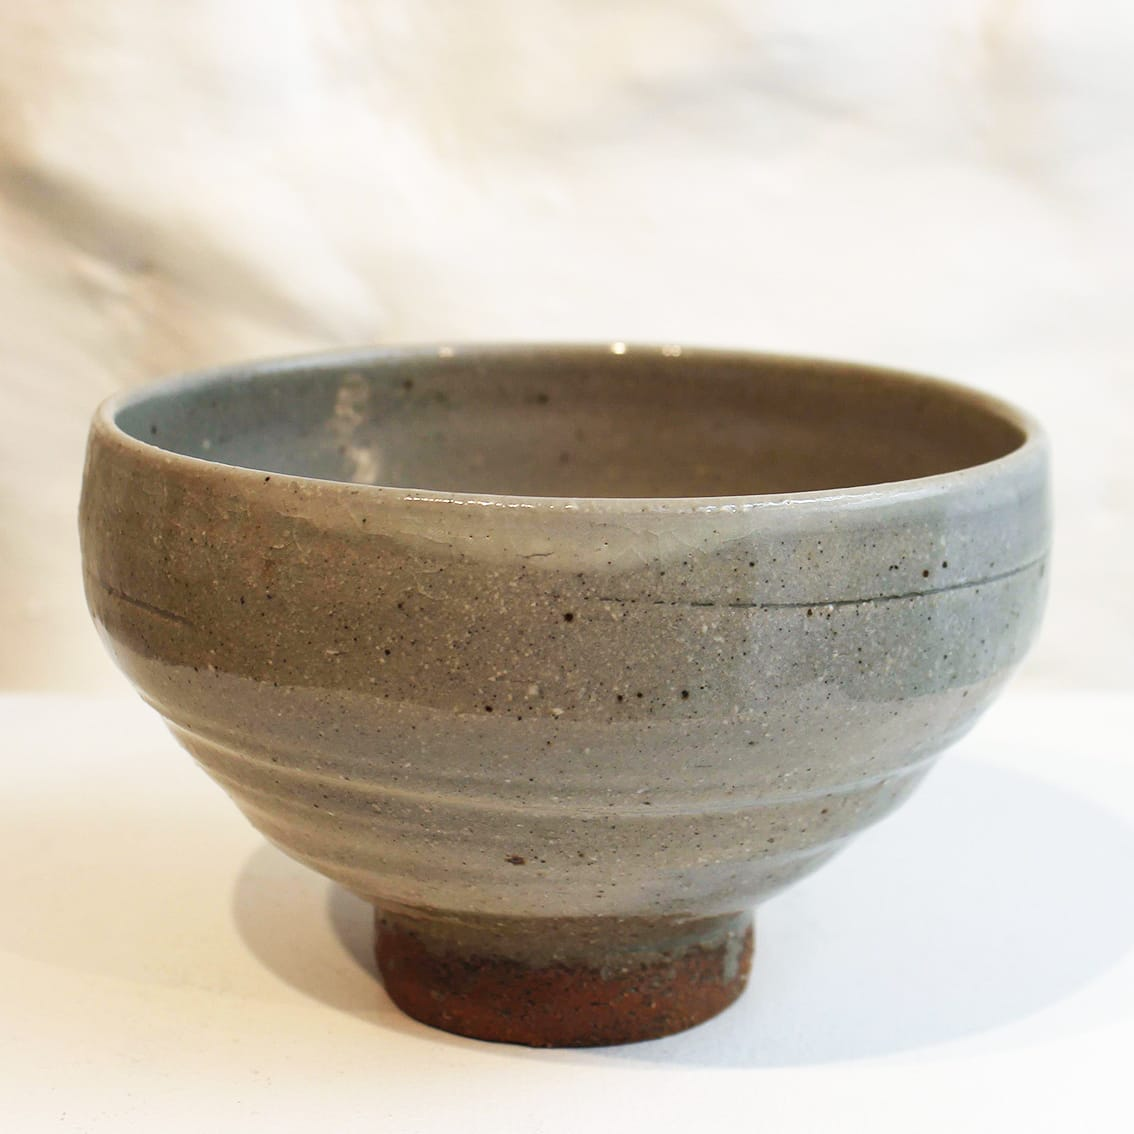 """<span class=""""link fancybox-details-link""""><a href=""""/artists/200-matthew-tyas/works/5463-matthew-tyas-ying-ching-chawan-bowl-2018/"""">View Detail Page</a></span><div class=""""artist""""><strong>Matthew Tyas</strong></div> <div class=""""title""""><em>Ying Ching Chawan Bowl</em>, 2018</div> <div class=""""signed_and_dated"""">stamped by the artist</div> <div class=""""medium"""">glazed thrown stoneware</div><div class=""""price"""">£75.00</div><div class=""""copyright_line"""">Copyright The Artist</div>"""